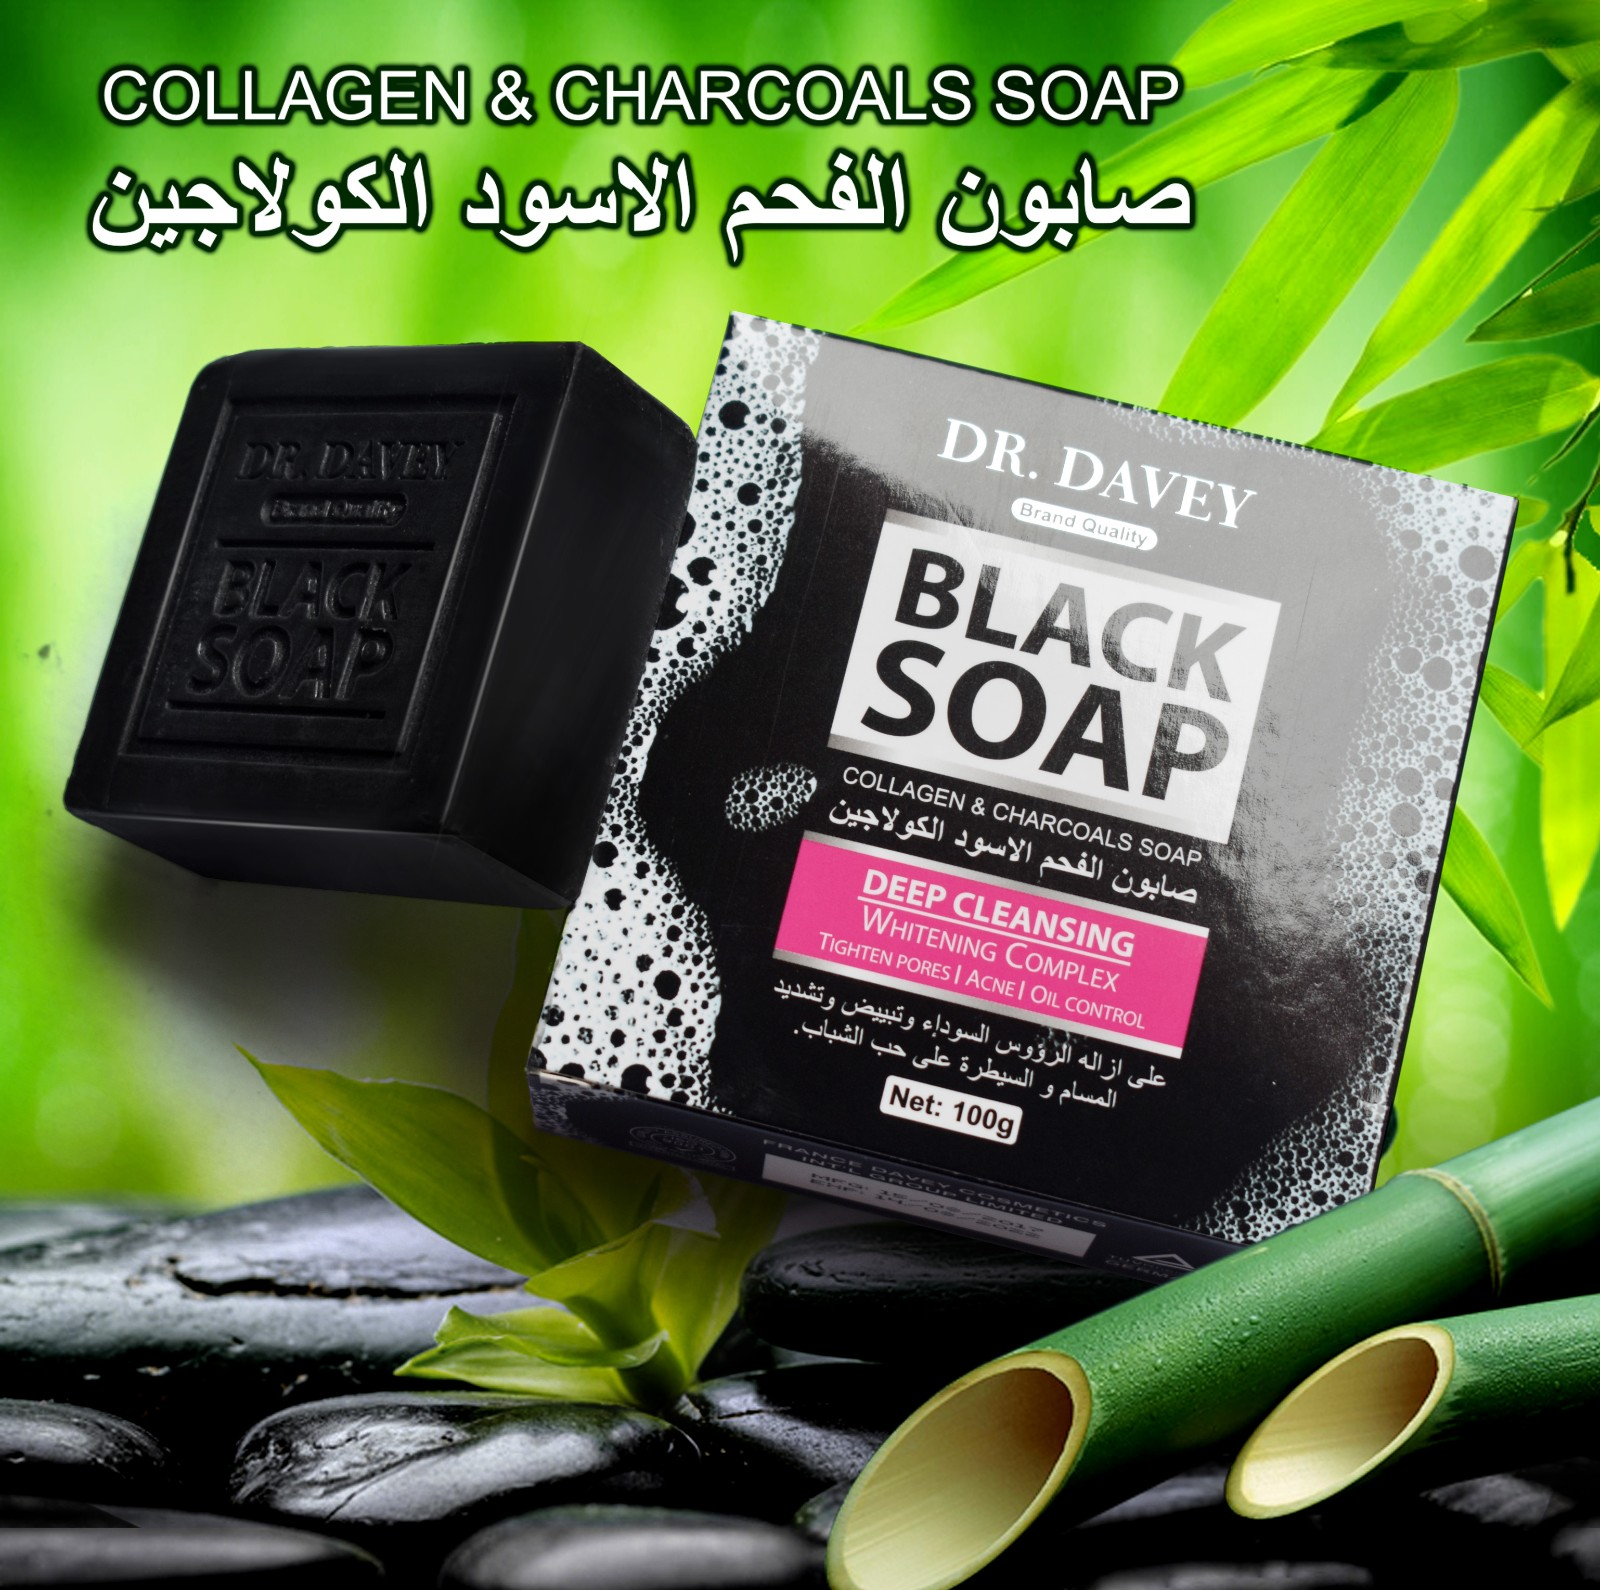 DR.DAVEY black charcoal soap cleaning whitening soap